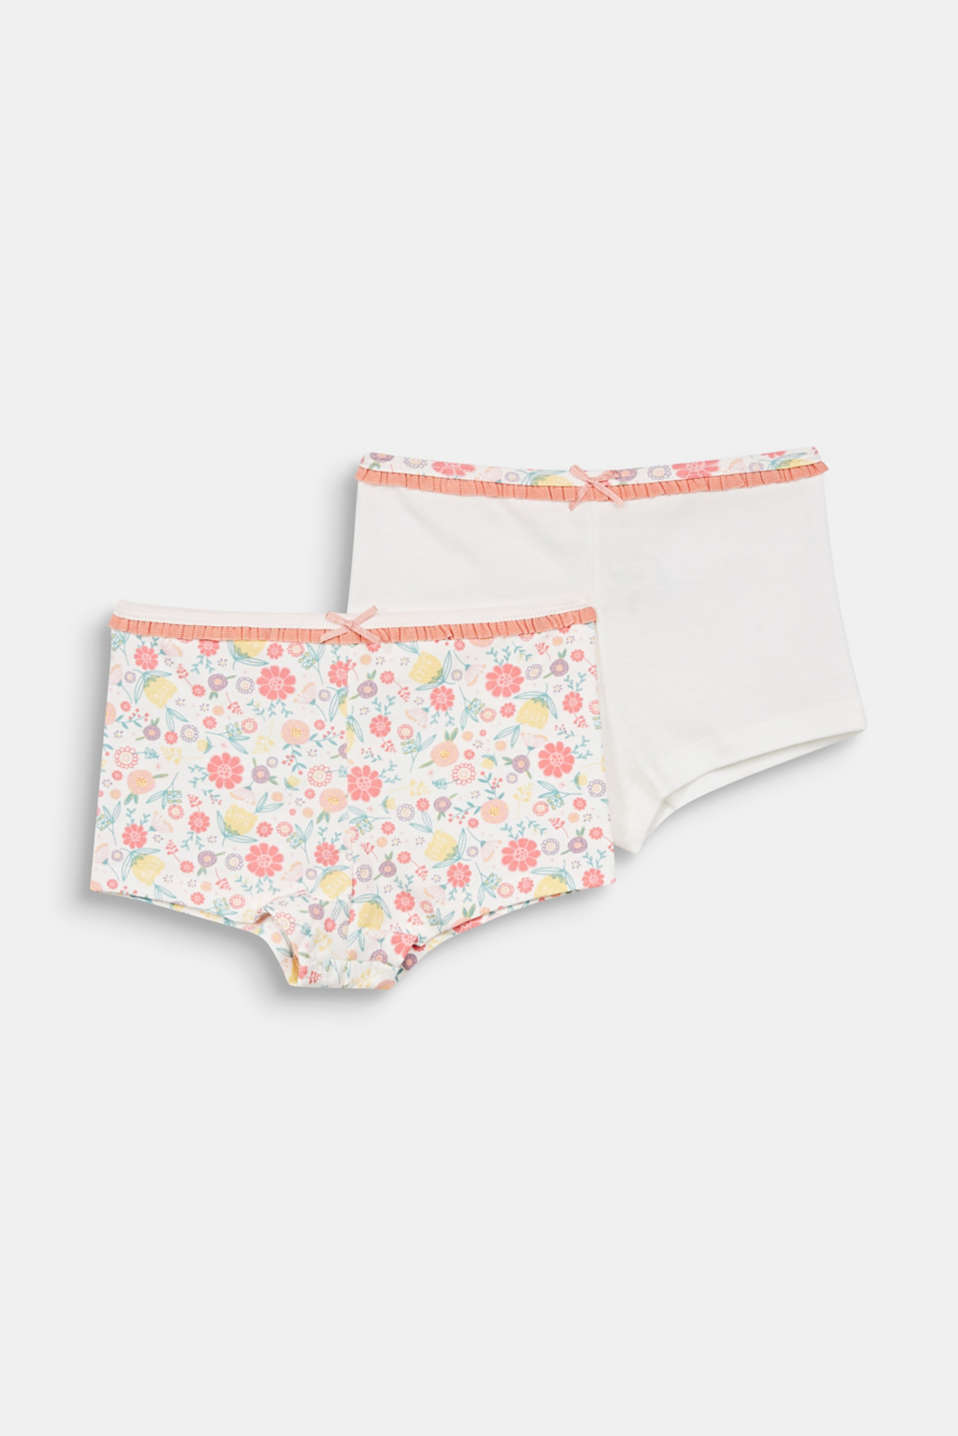 Esprit - Lot de 2 shortys, unicolore ou à imprimé